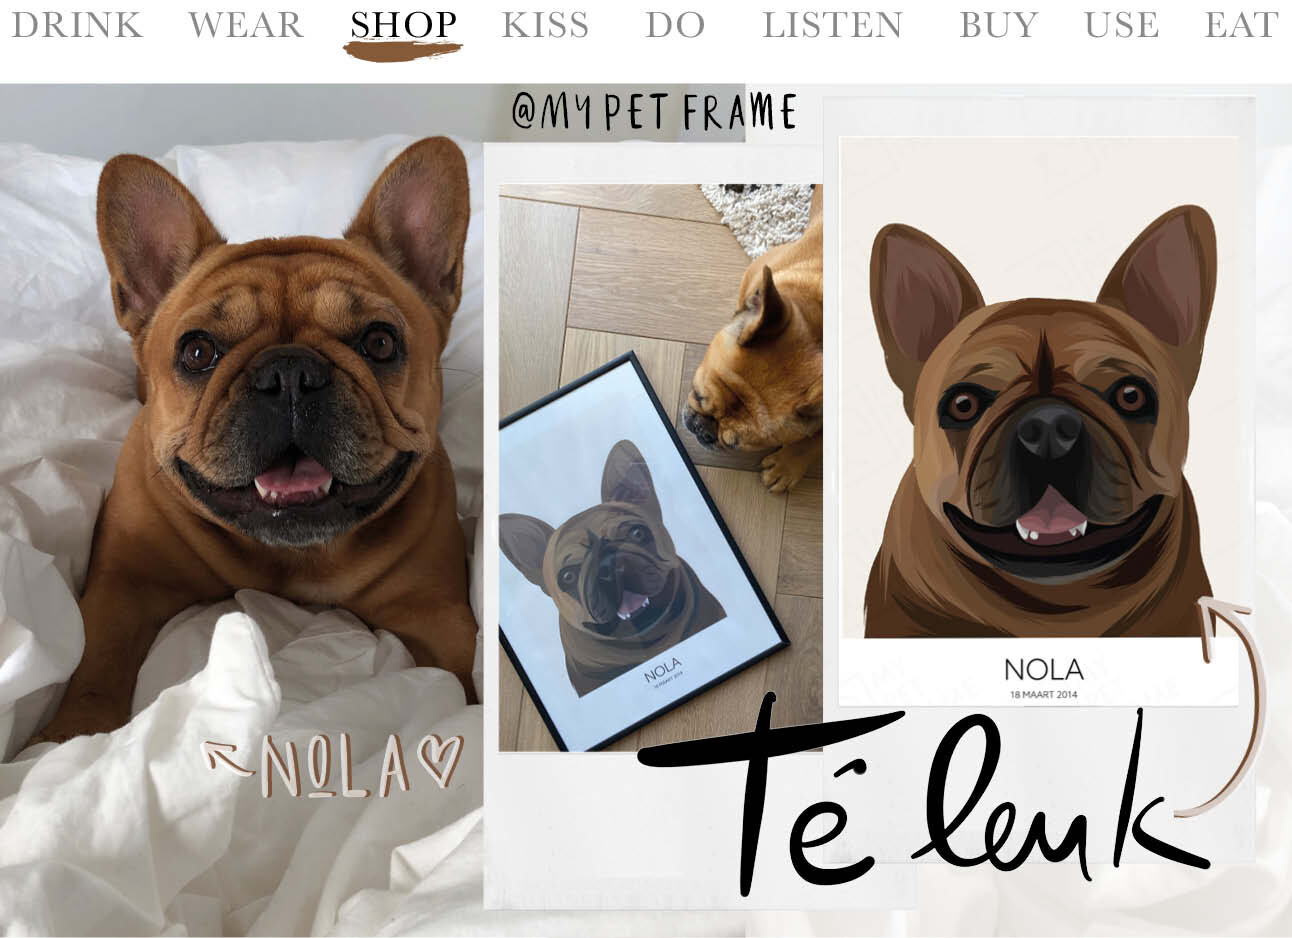 Today we shop at My Pet Frame